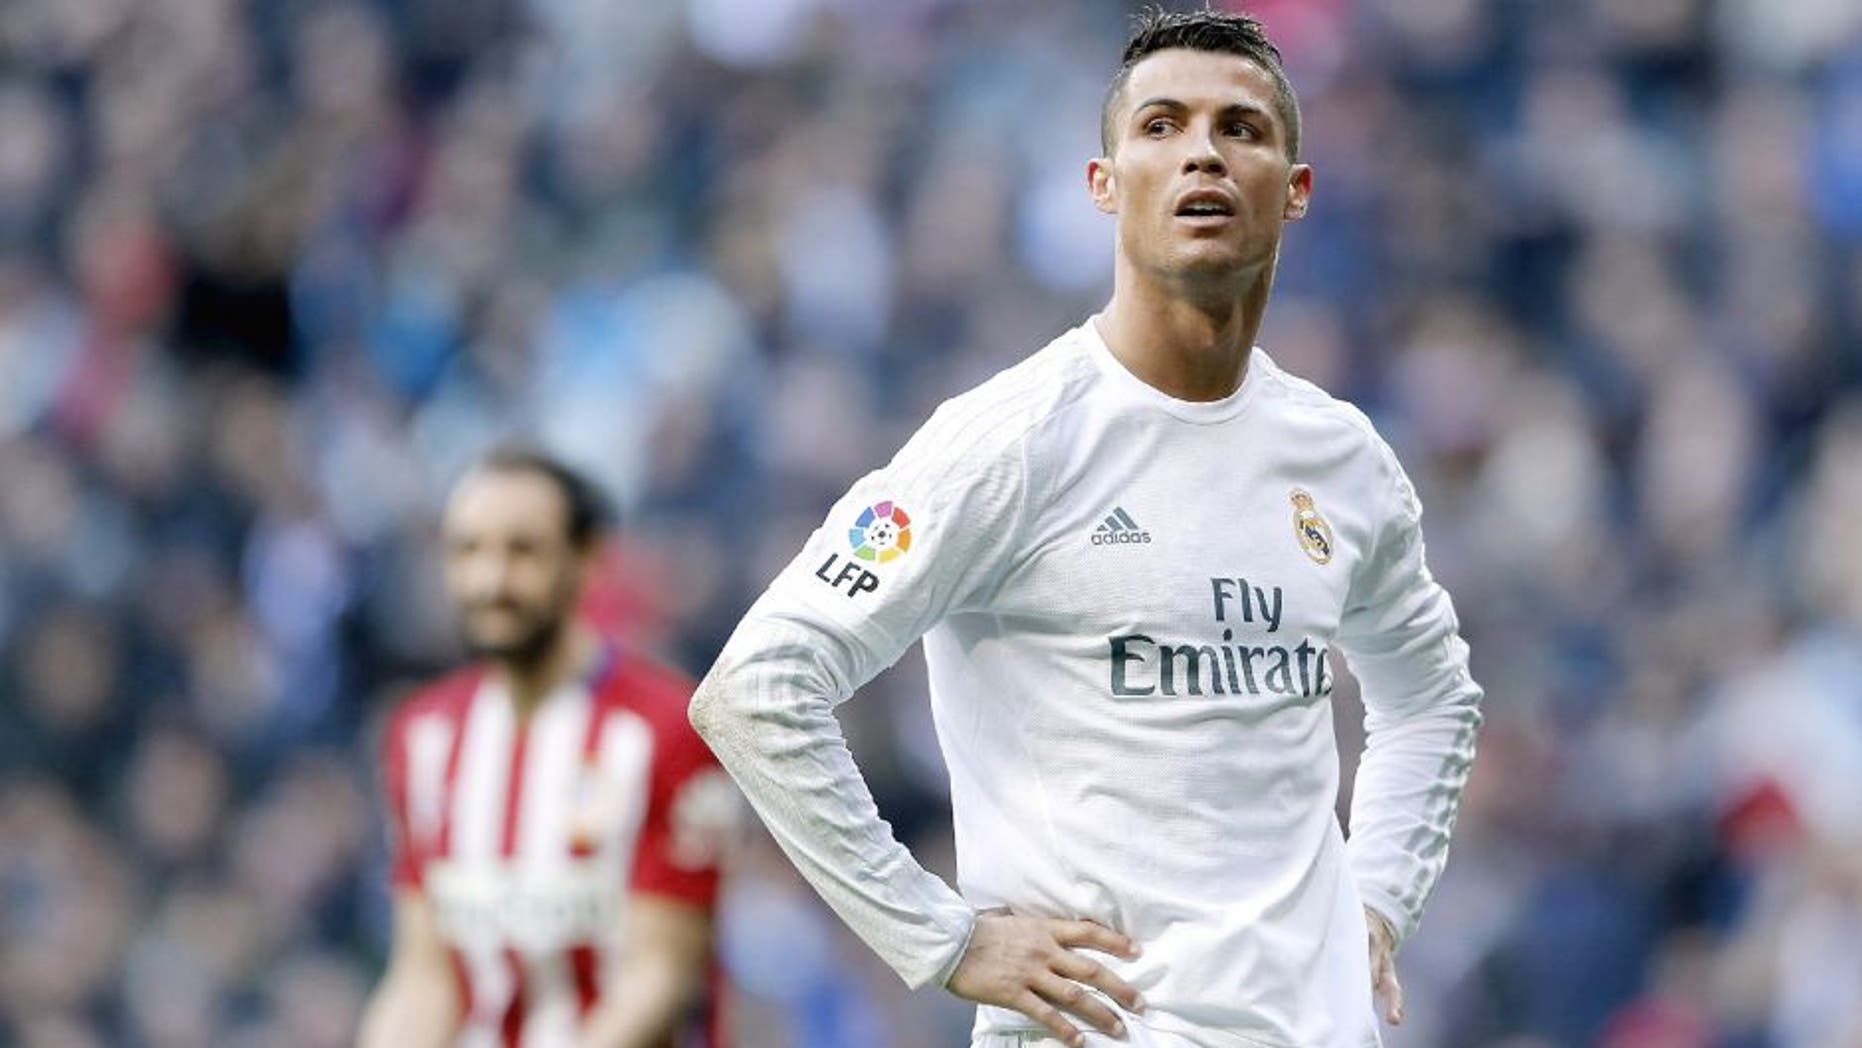 MADRID, SPAIN - FEBRUARY 27: Cristiano Ronaldo of Real Madrid reacts during the La Liga match between Real Madrid CF and Club Atletico de Madrid at Estadio Santiago Bernabeu on February 27, 2016 in Madrid, Spain. (Photo by Angel Martinez/Real Madrid via Getty Images)